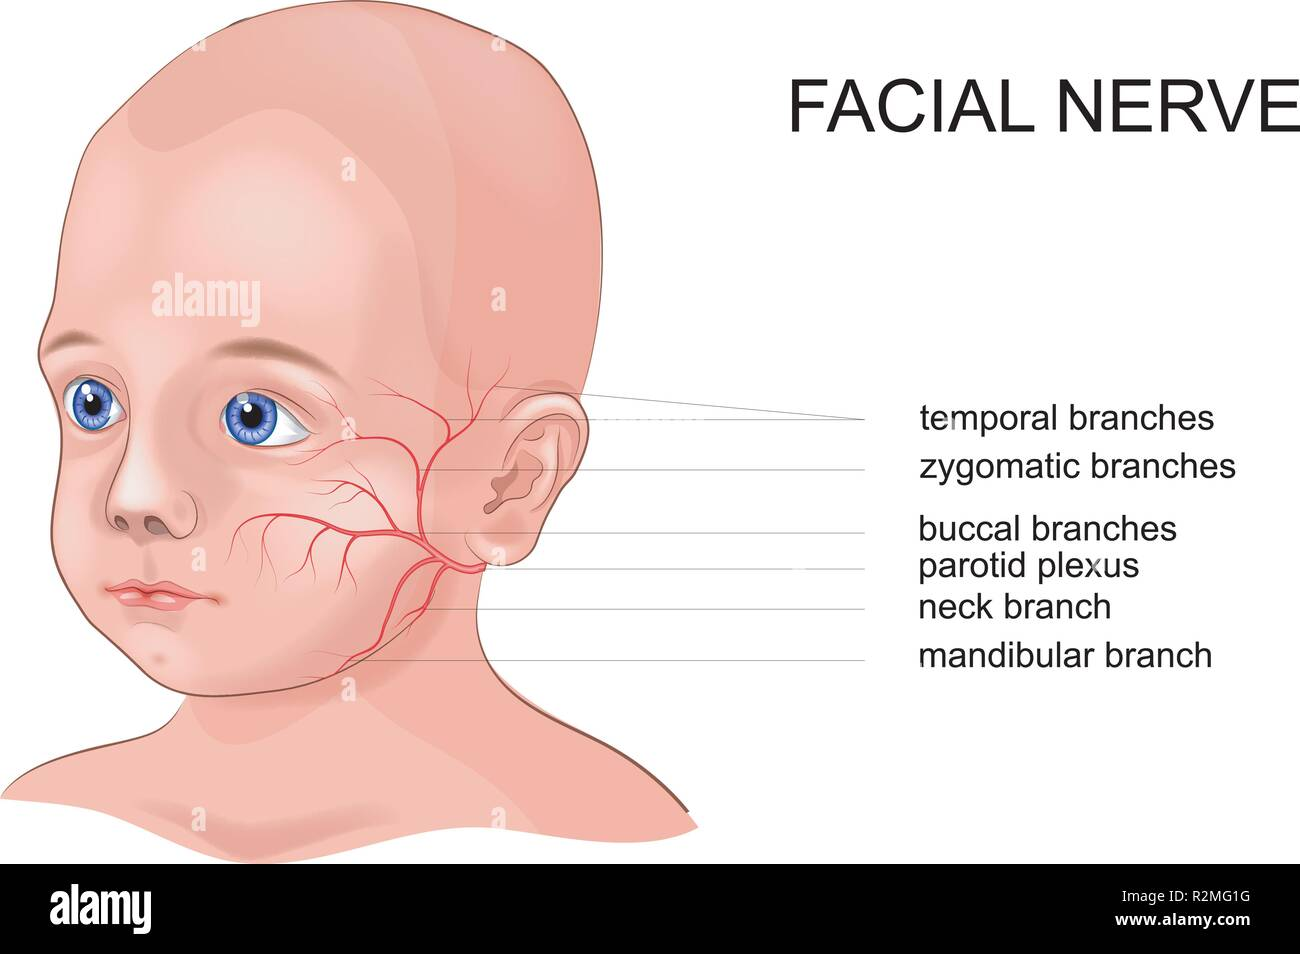 vector schematic illustration of the anatomy of the facial nerve - Stock Image